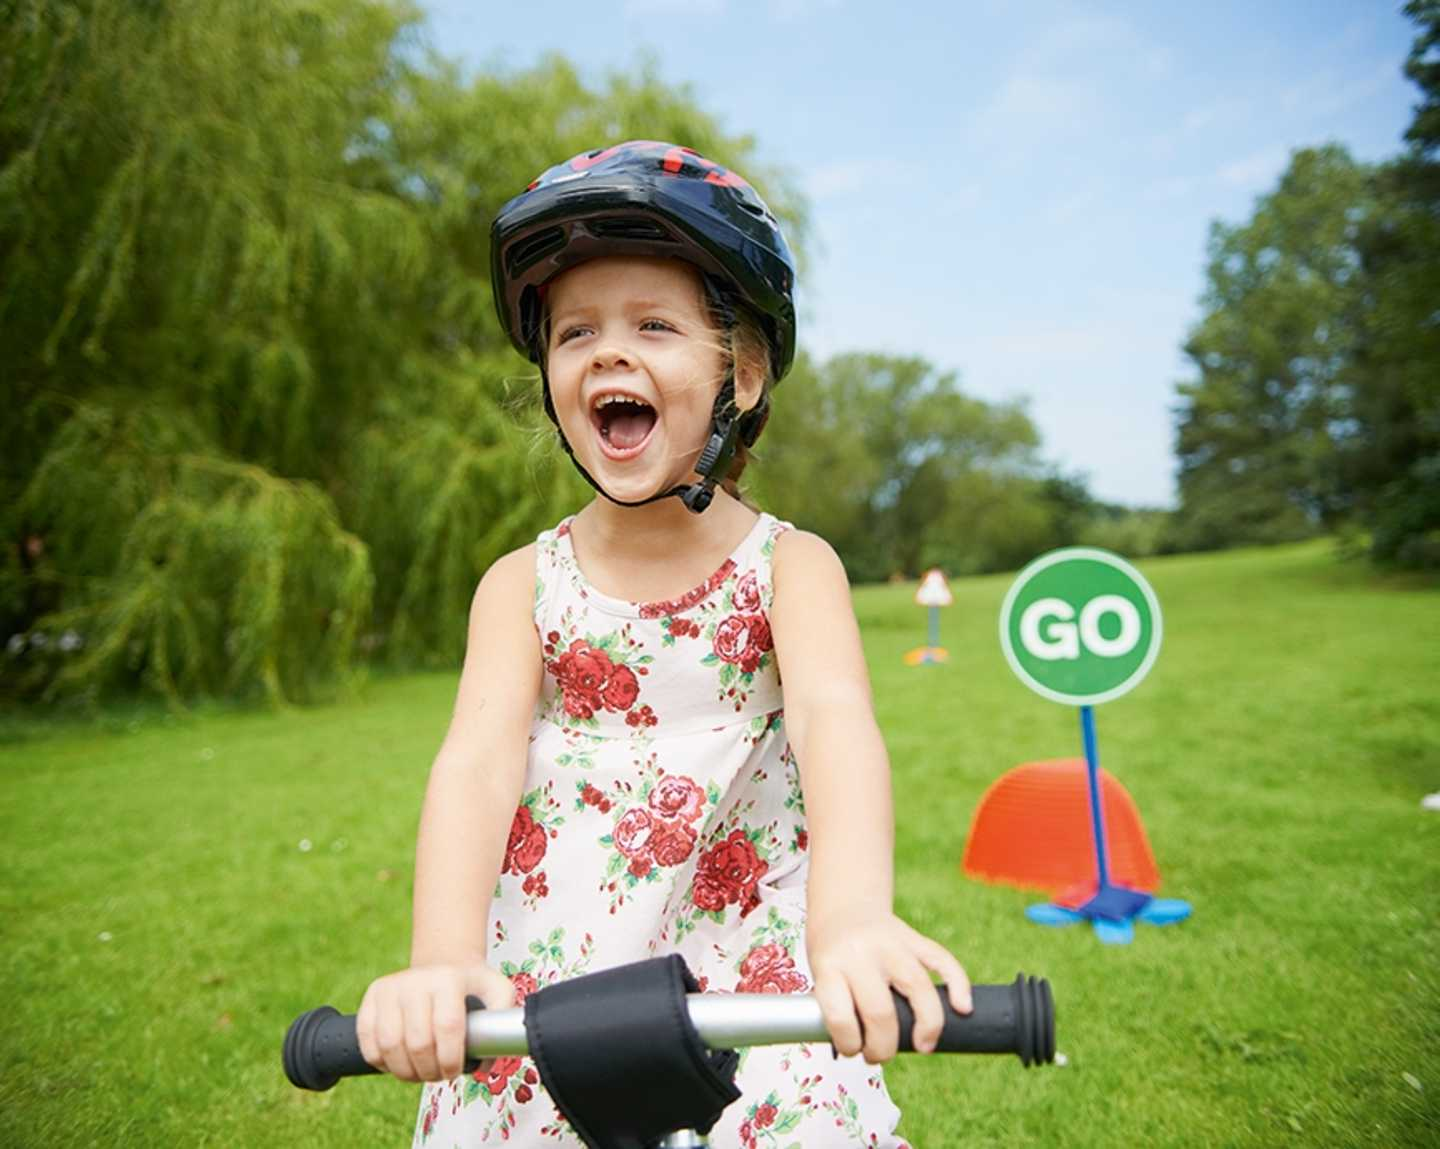 Balance Bike Coaching